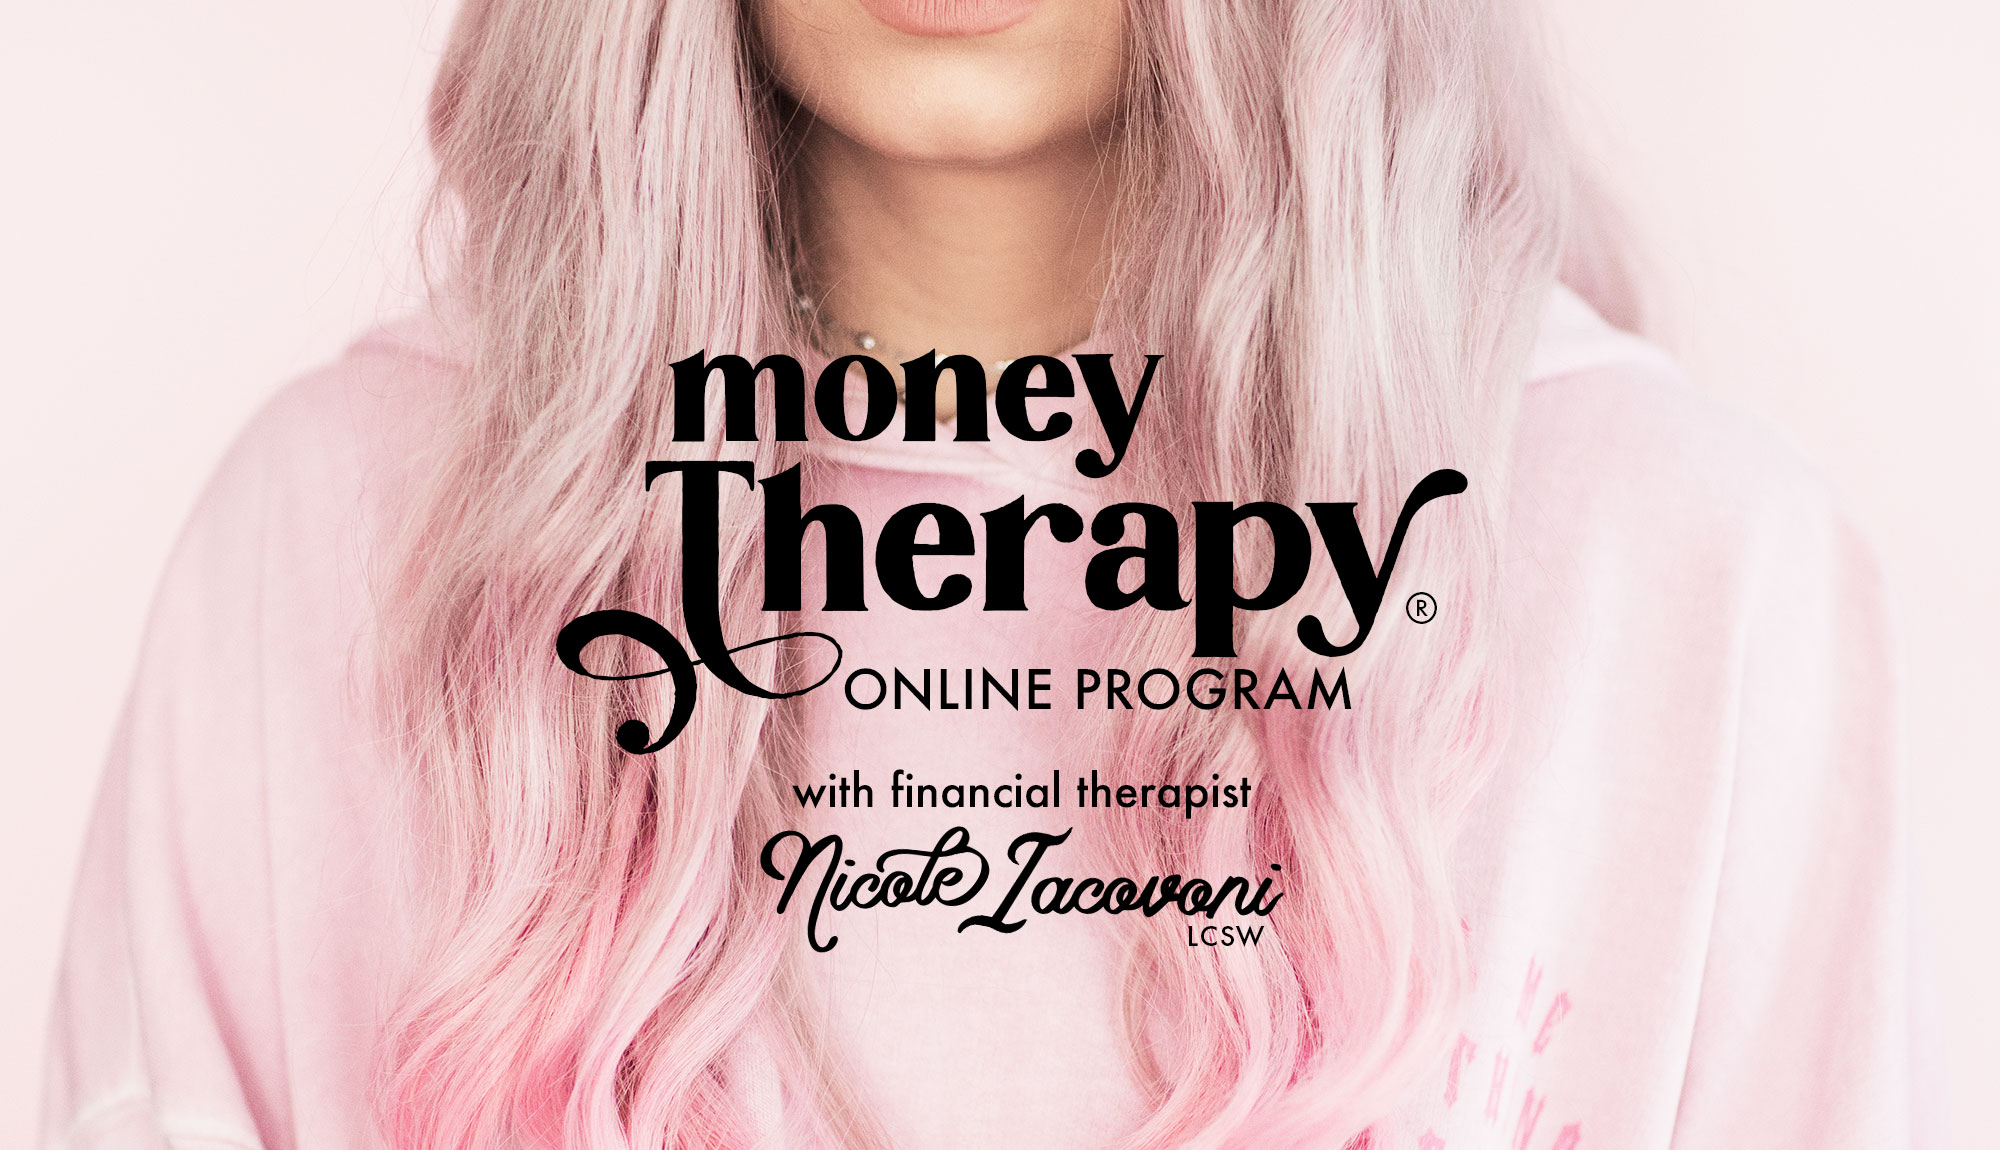 Money Therapy Online Program Logo Hosted By Nicole Iacovoni Financial Therapist